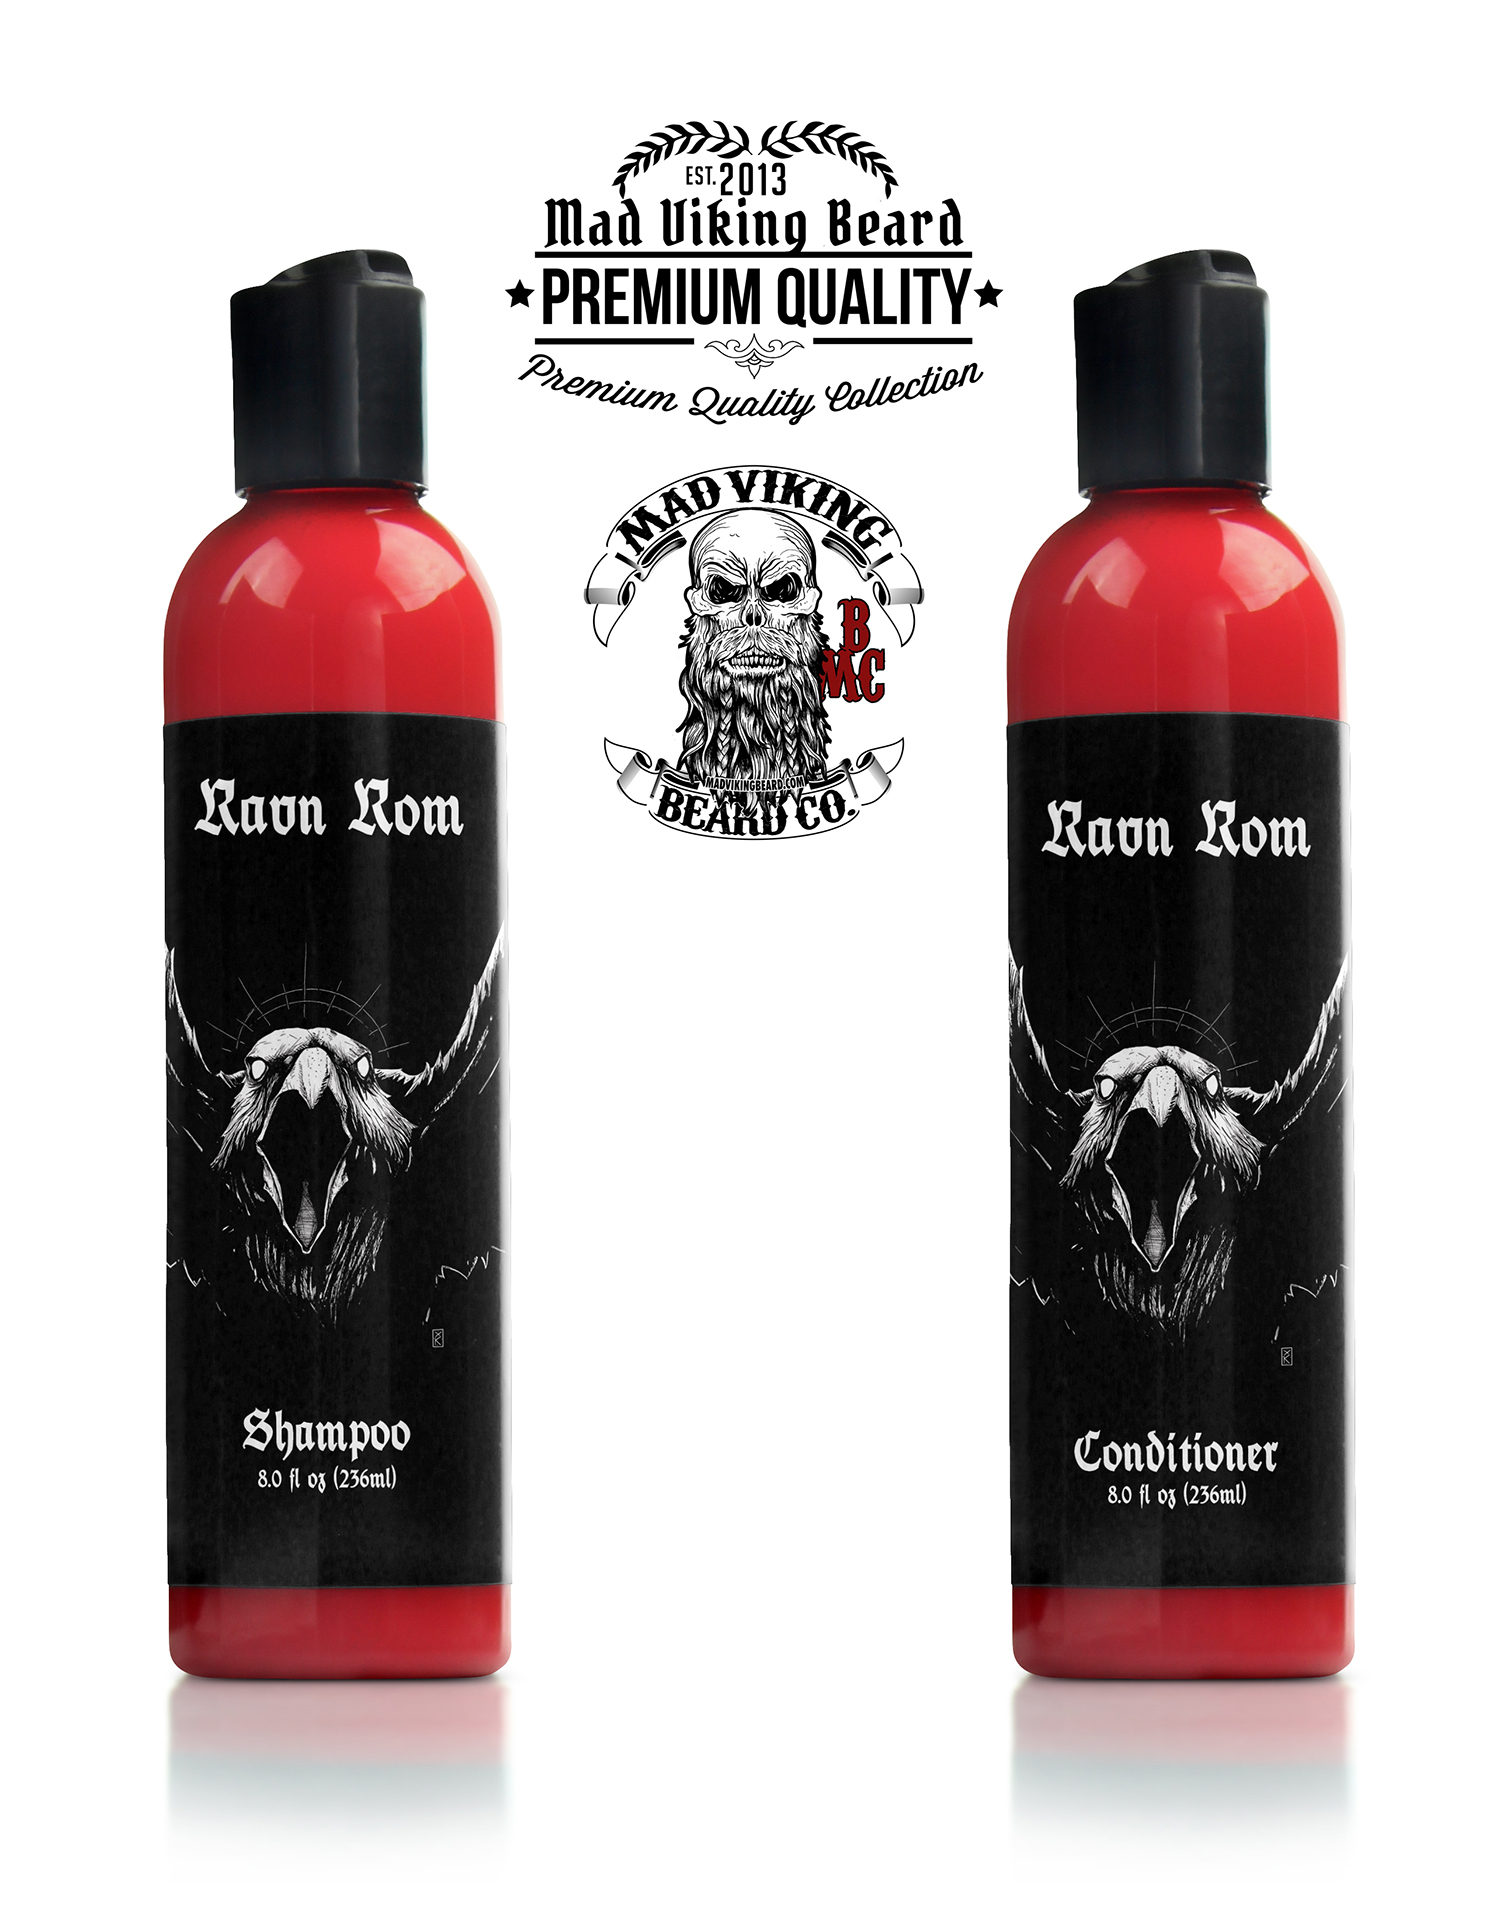 Mad Viking Ravn Rom Shampoo & Conditioner